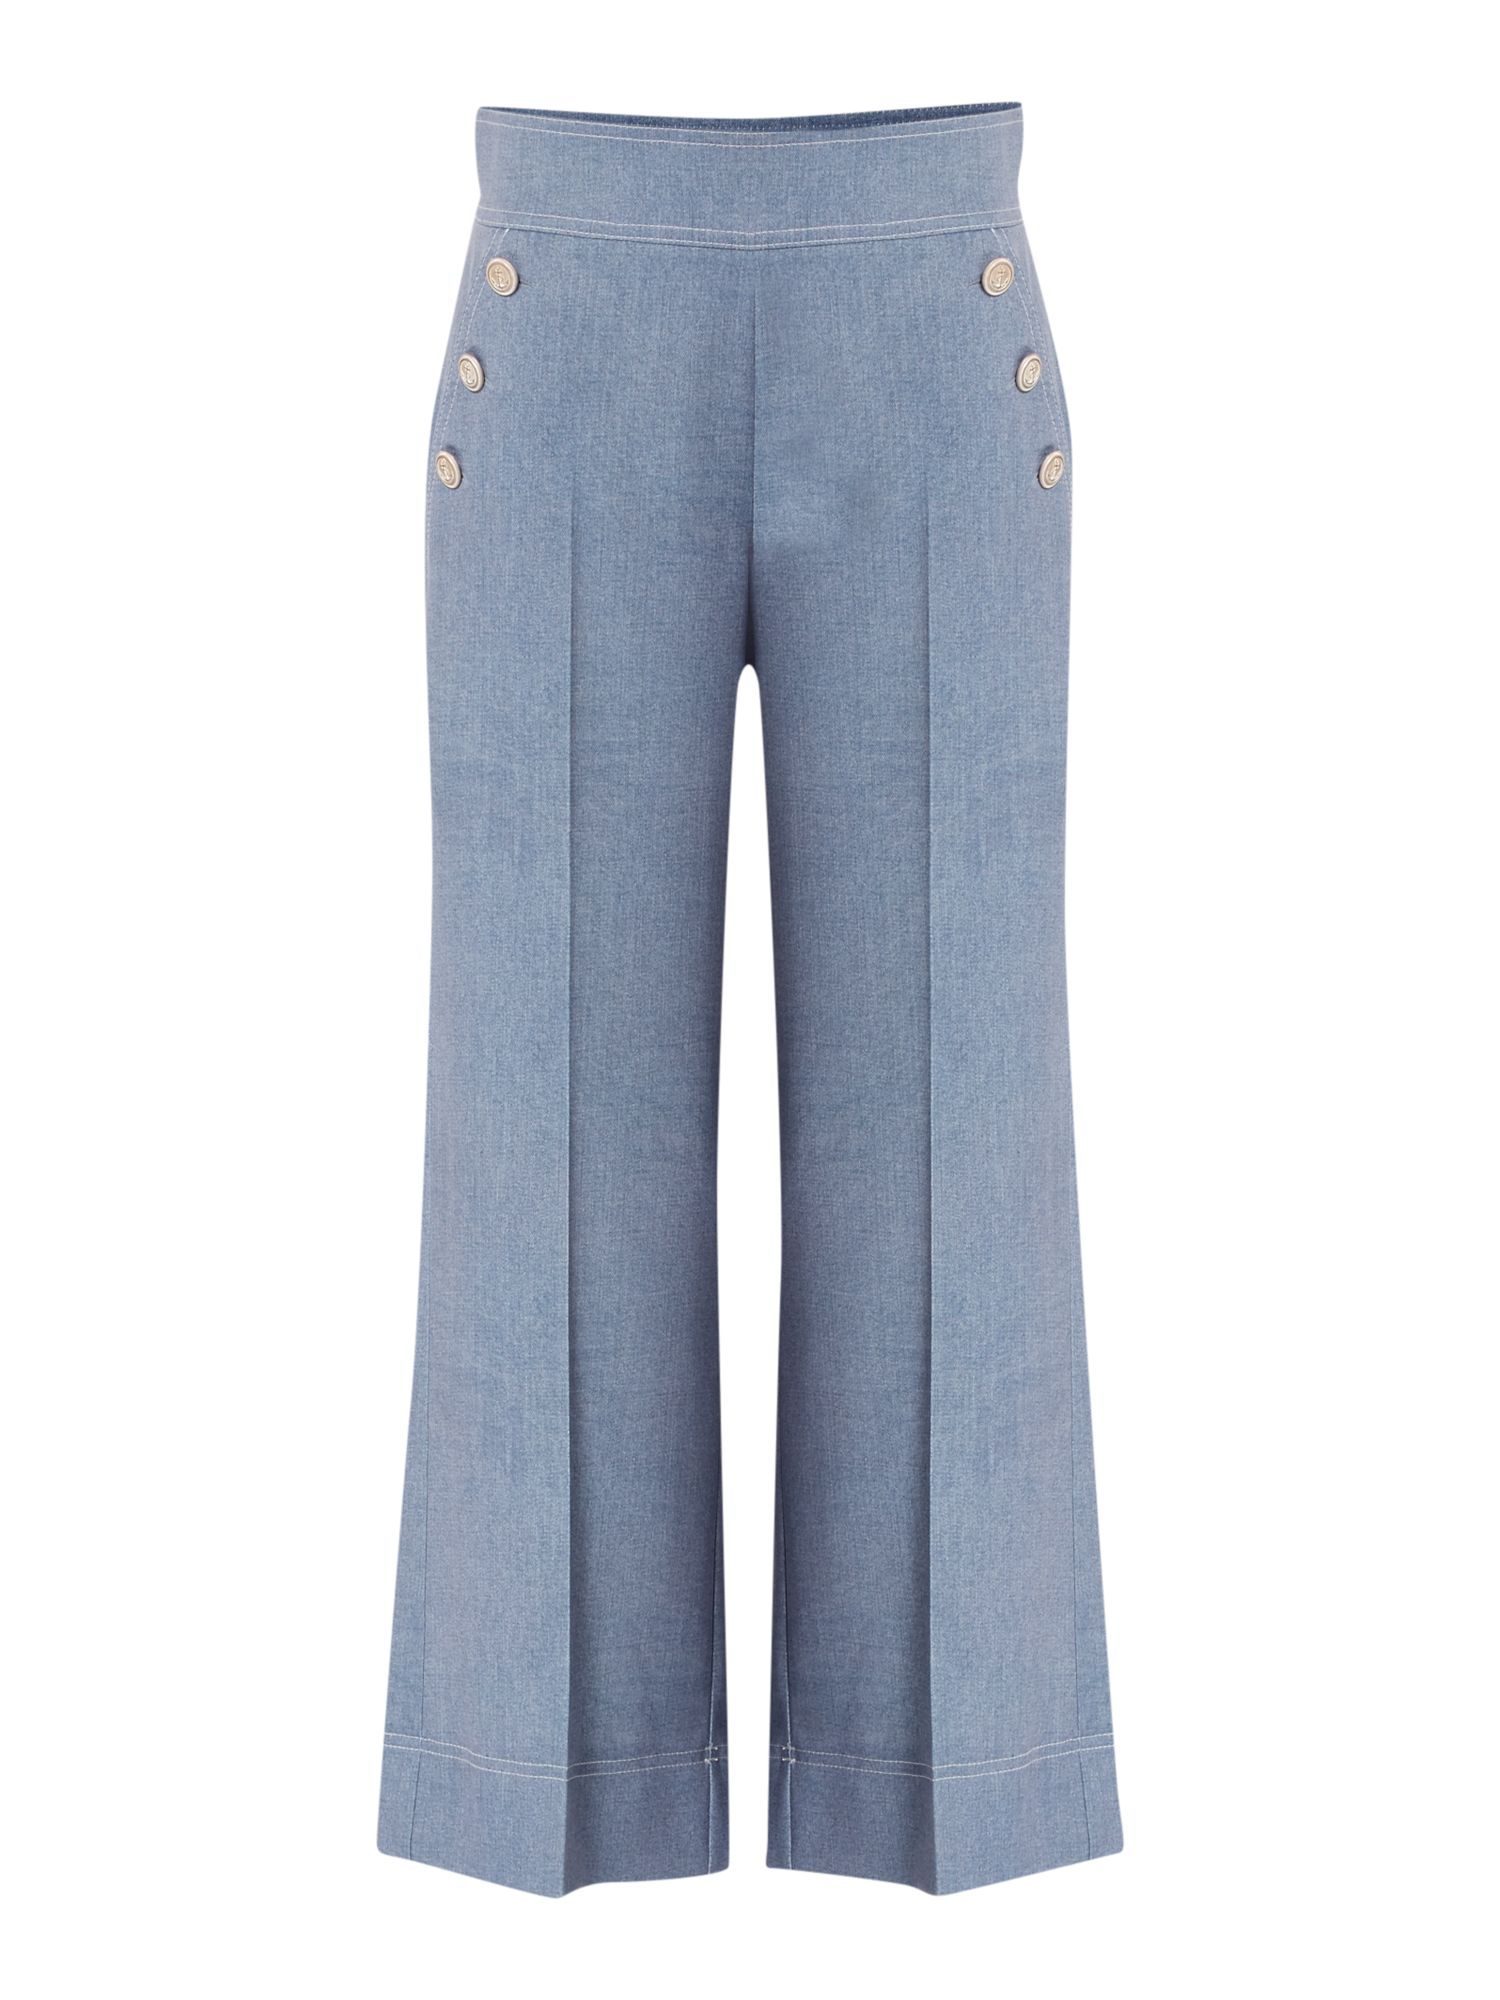 Marella GOLIA chambray culottes with front button detail, Blue